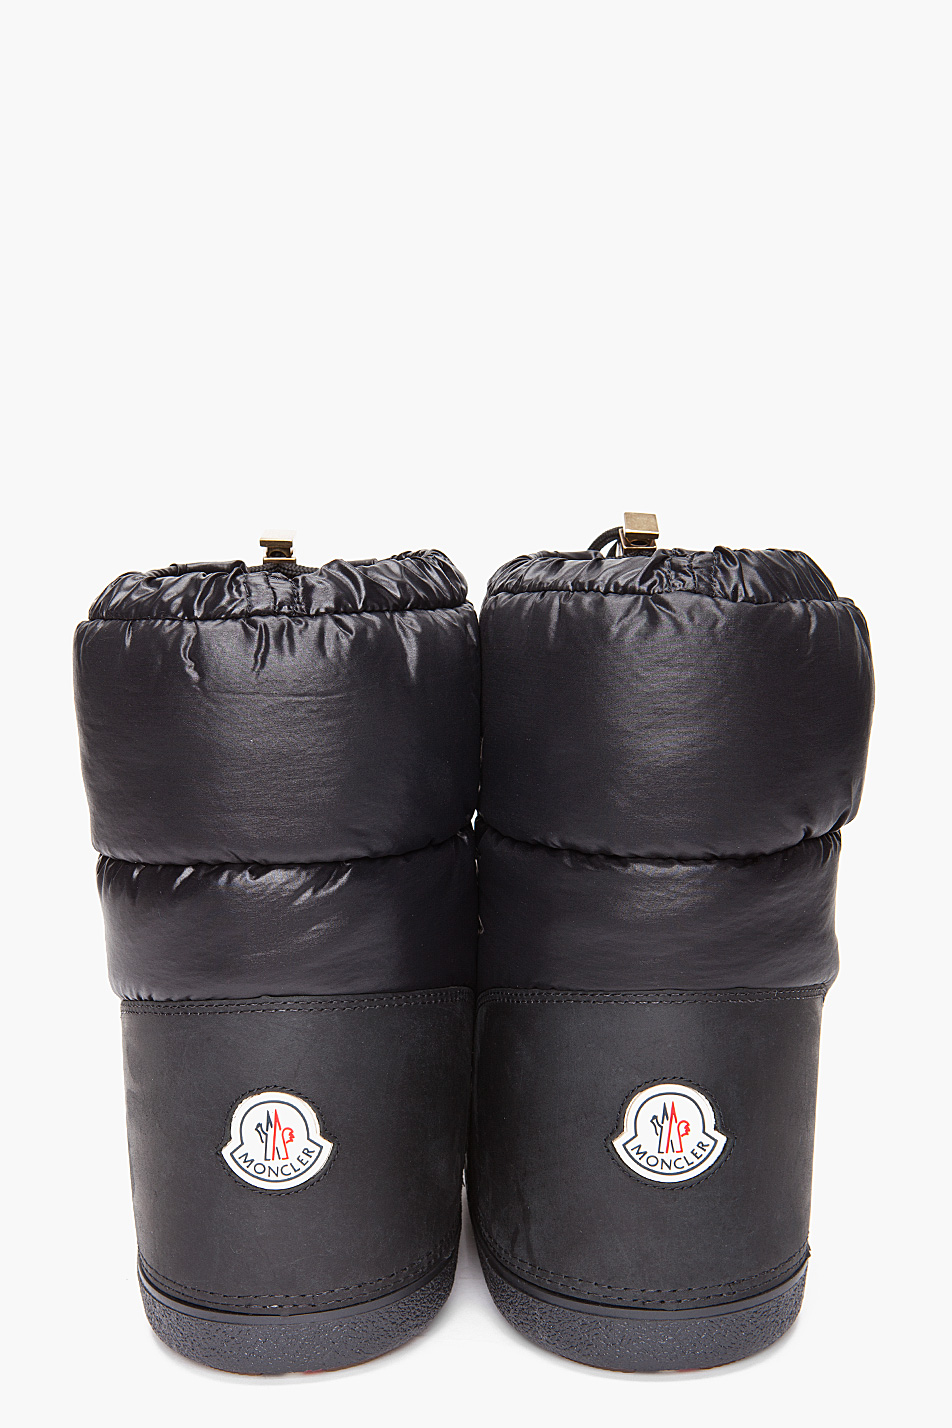 Moncler Moon Boots In Black For Men Lyst